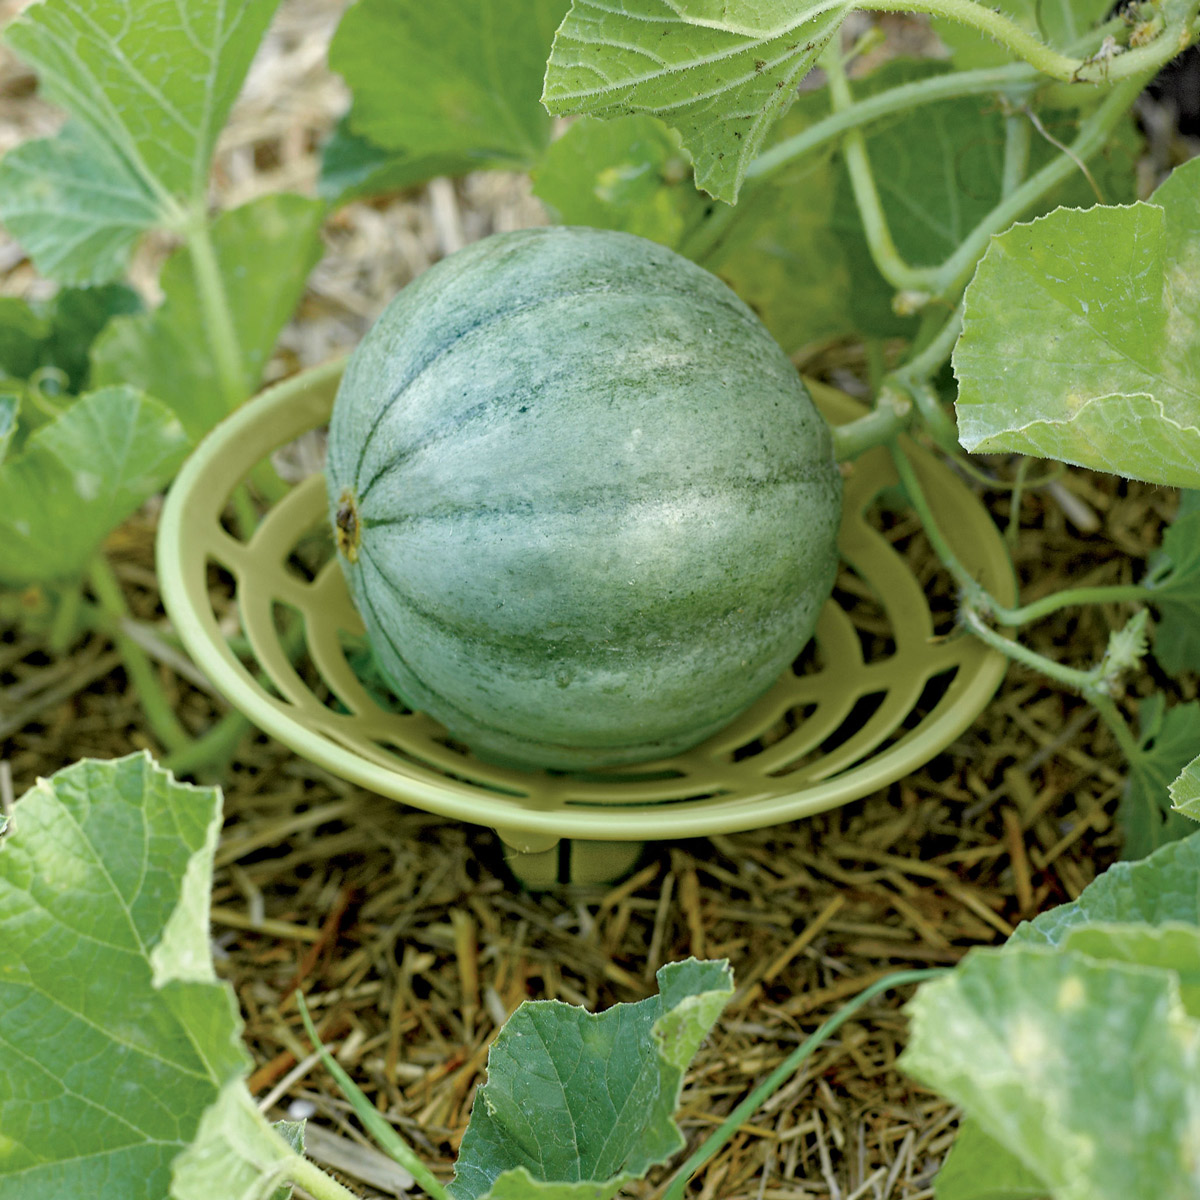 Melon And Squash Garden Cradles The Green Head